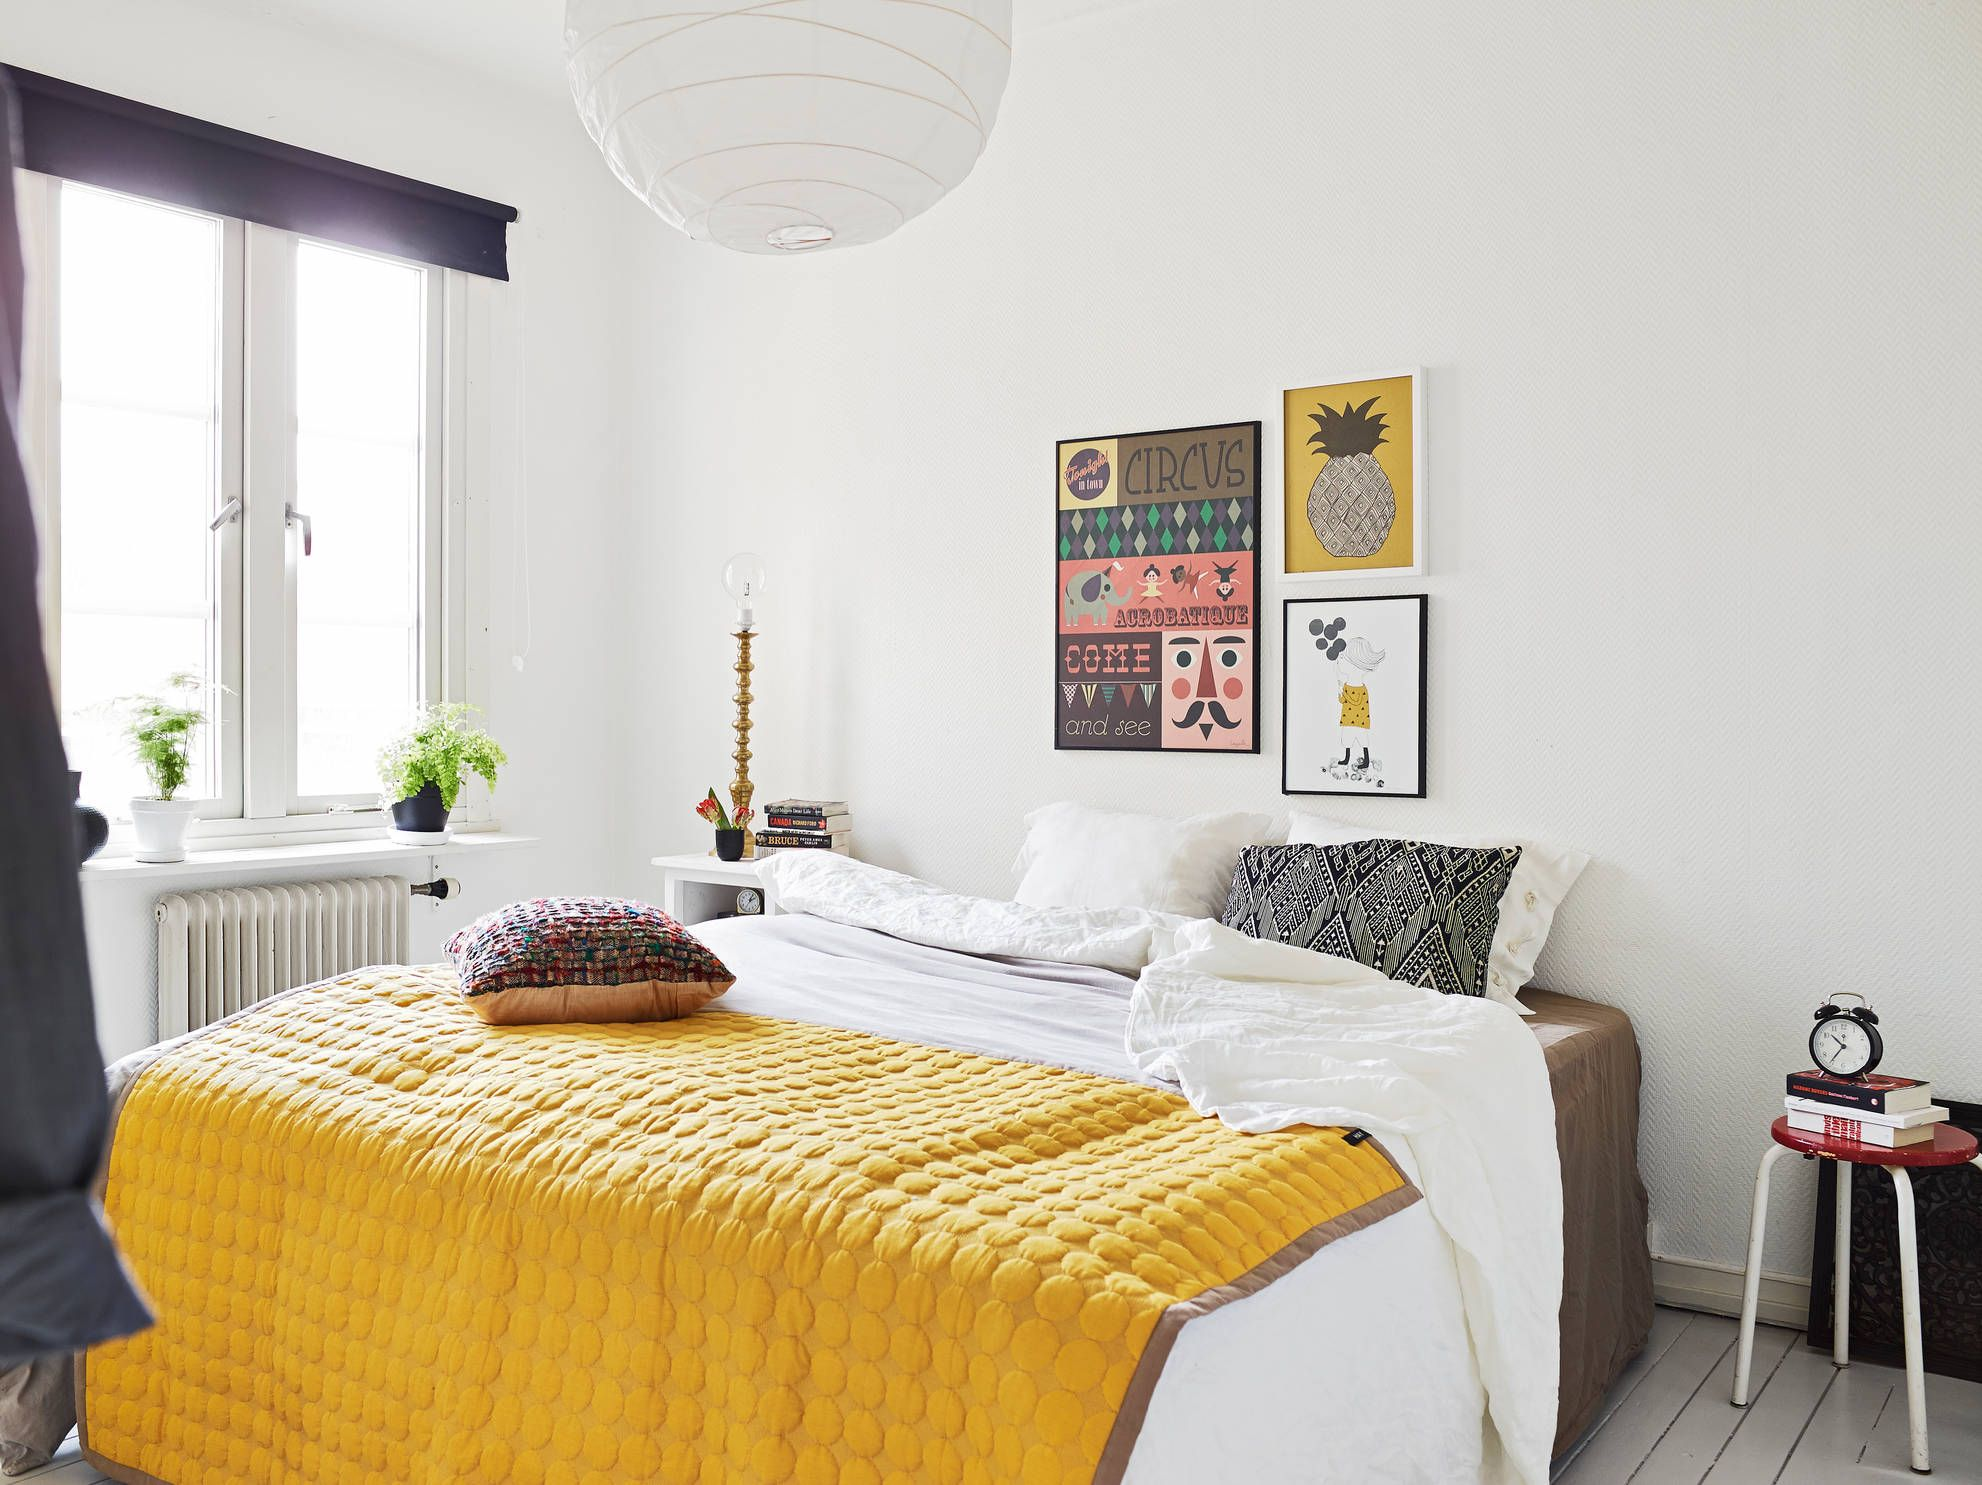 A touch of yellow in the bedroom via Stadshem.